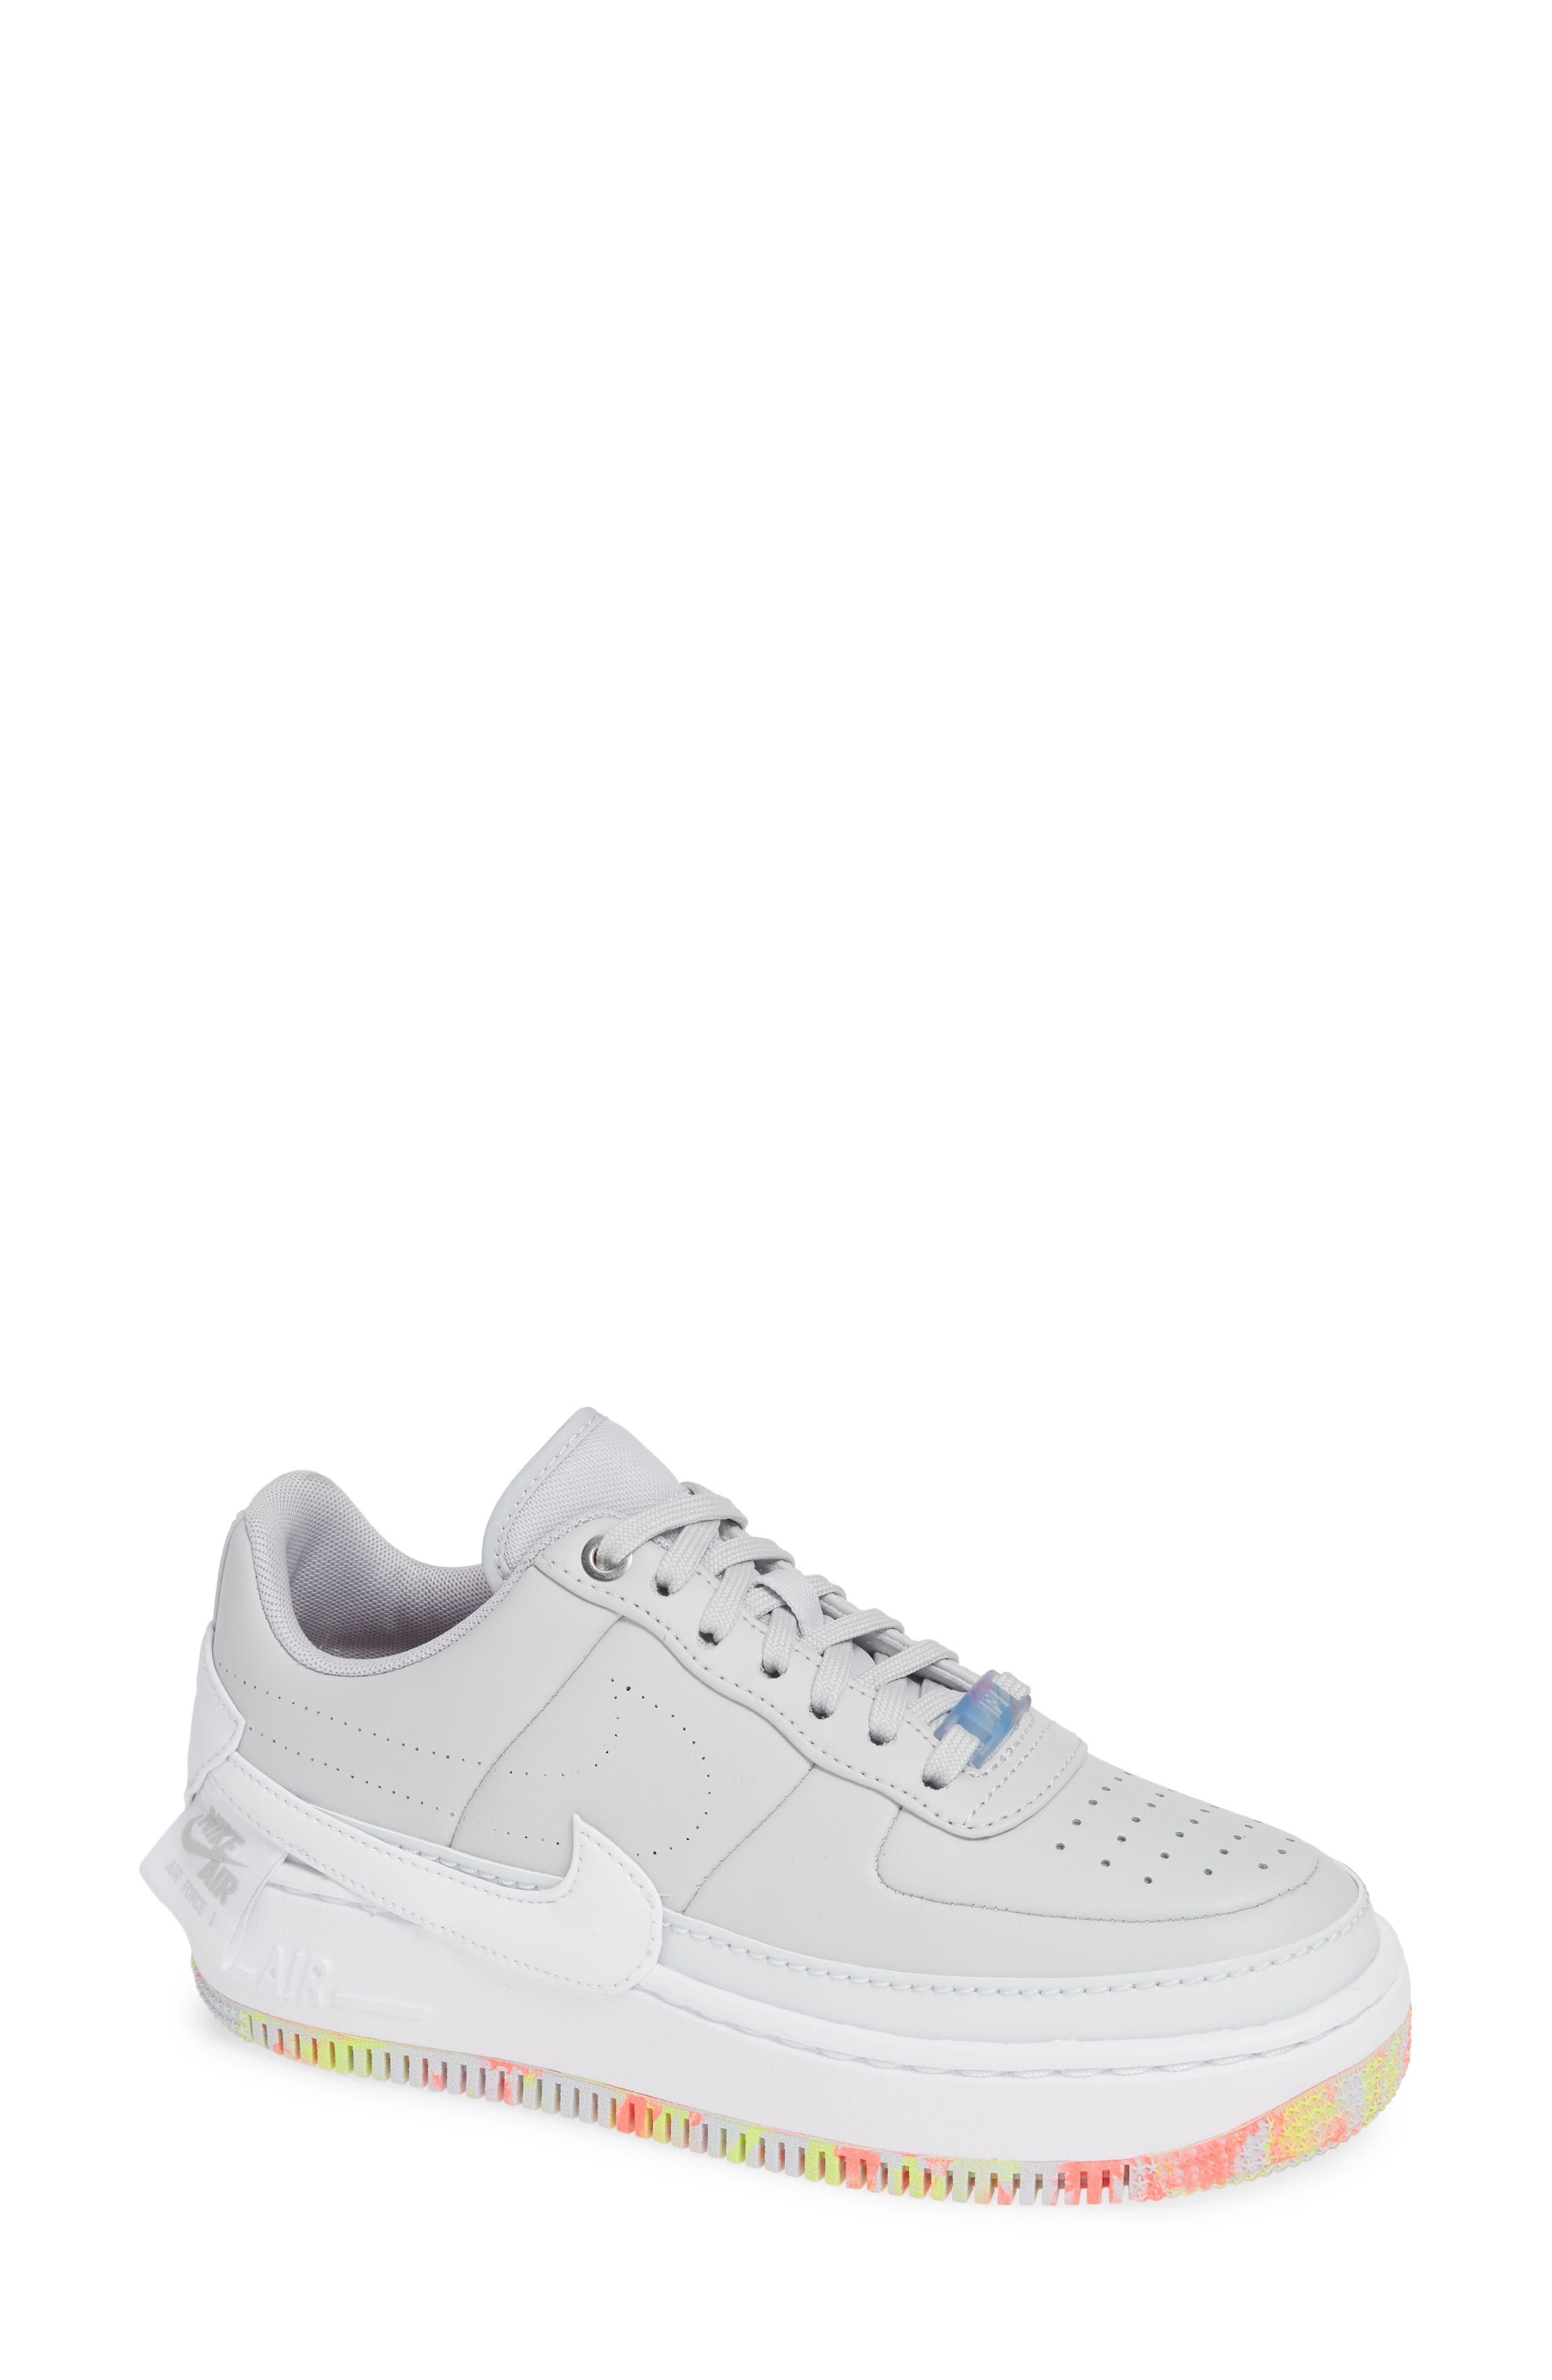 Air Force 1 Jester XX Print Sneaker,                             Main thumbnail 1, color,                             020